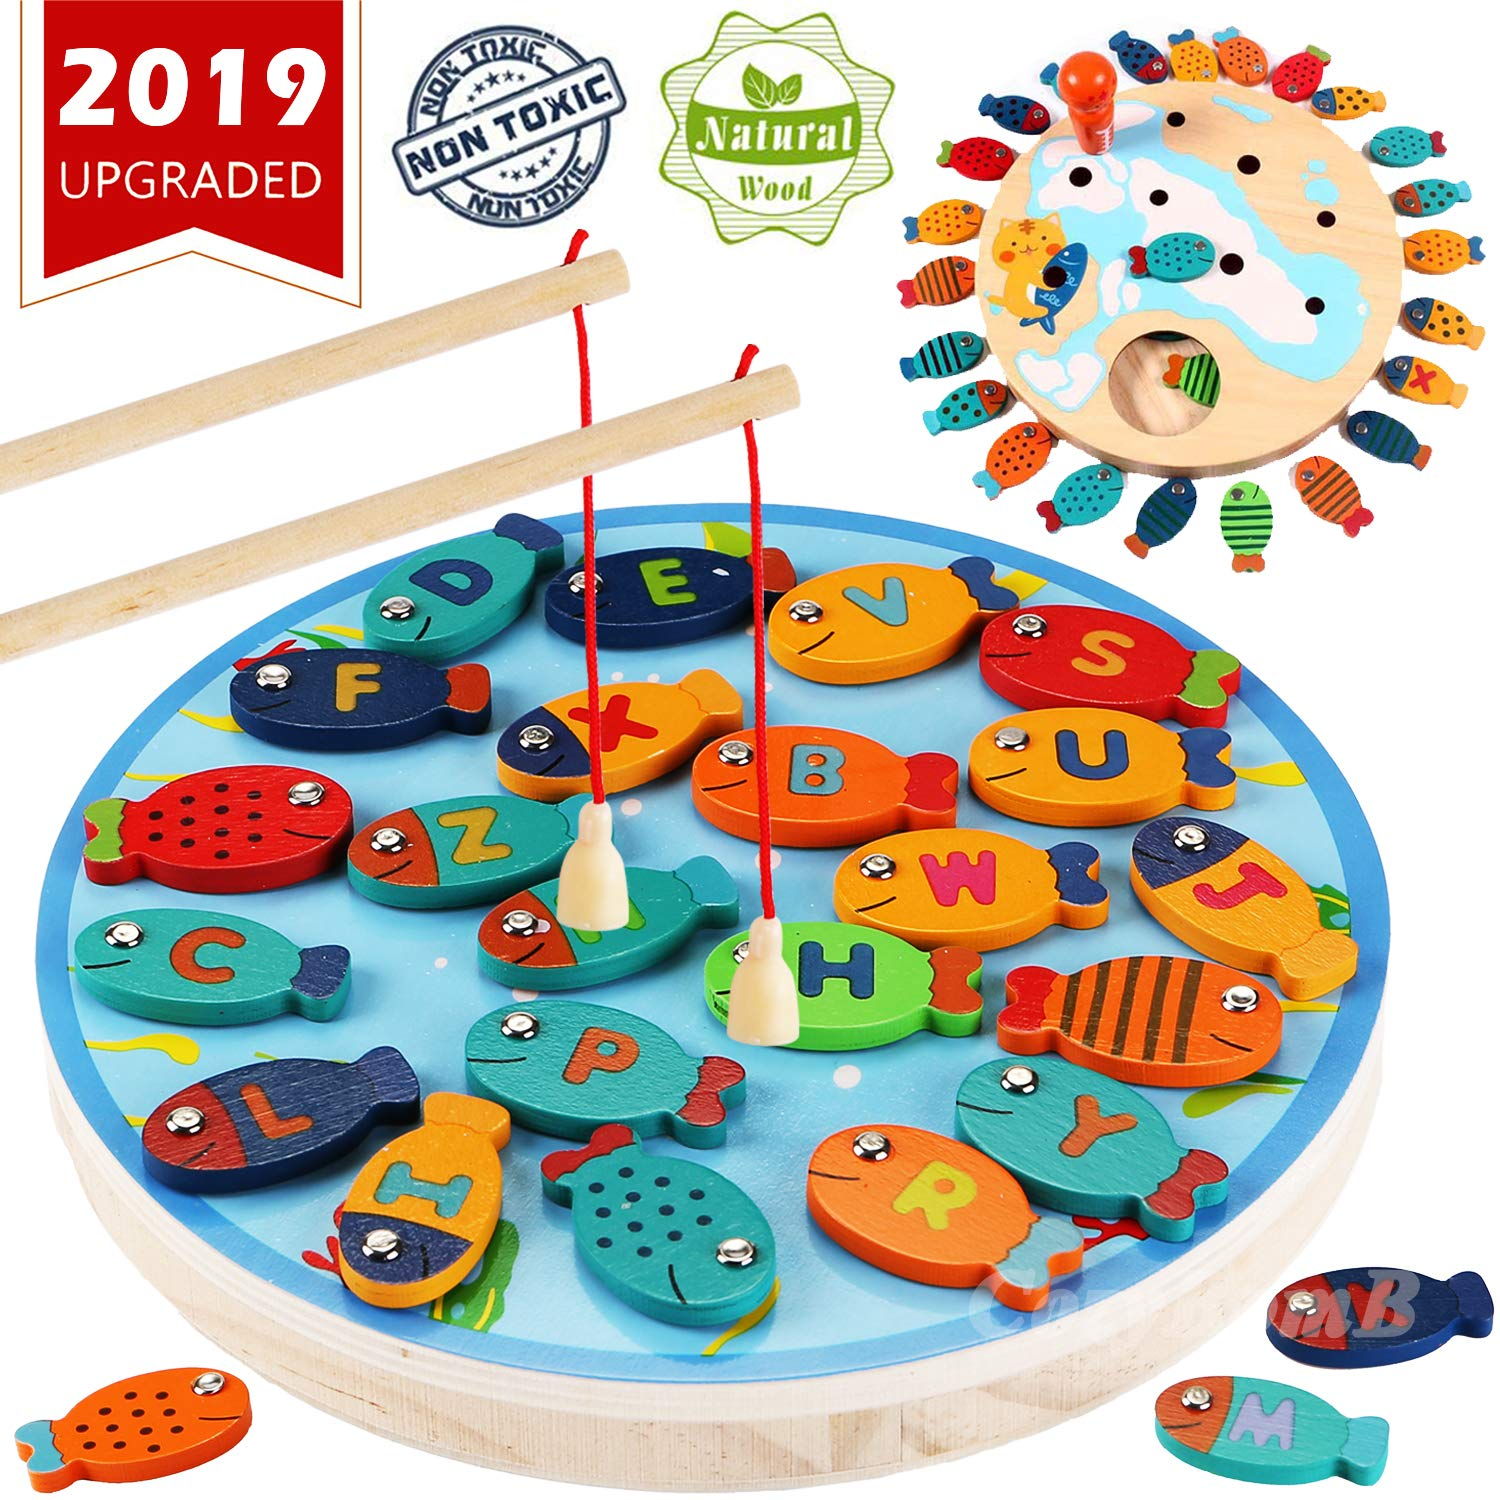 Magnetic Wooden Fishing Game Toy For Toddlers Alphabet Fish Catching Counting Board Games Toys For 2 3 4 Year Old